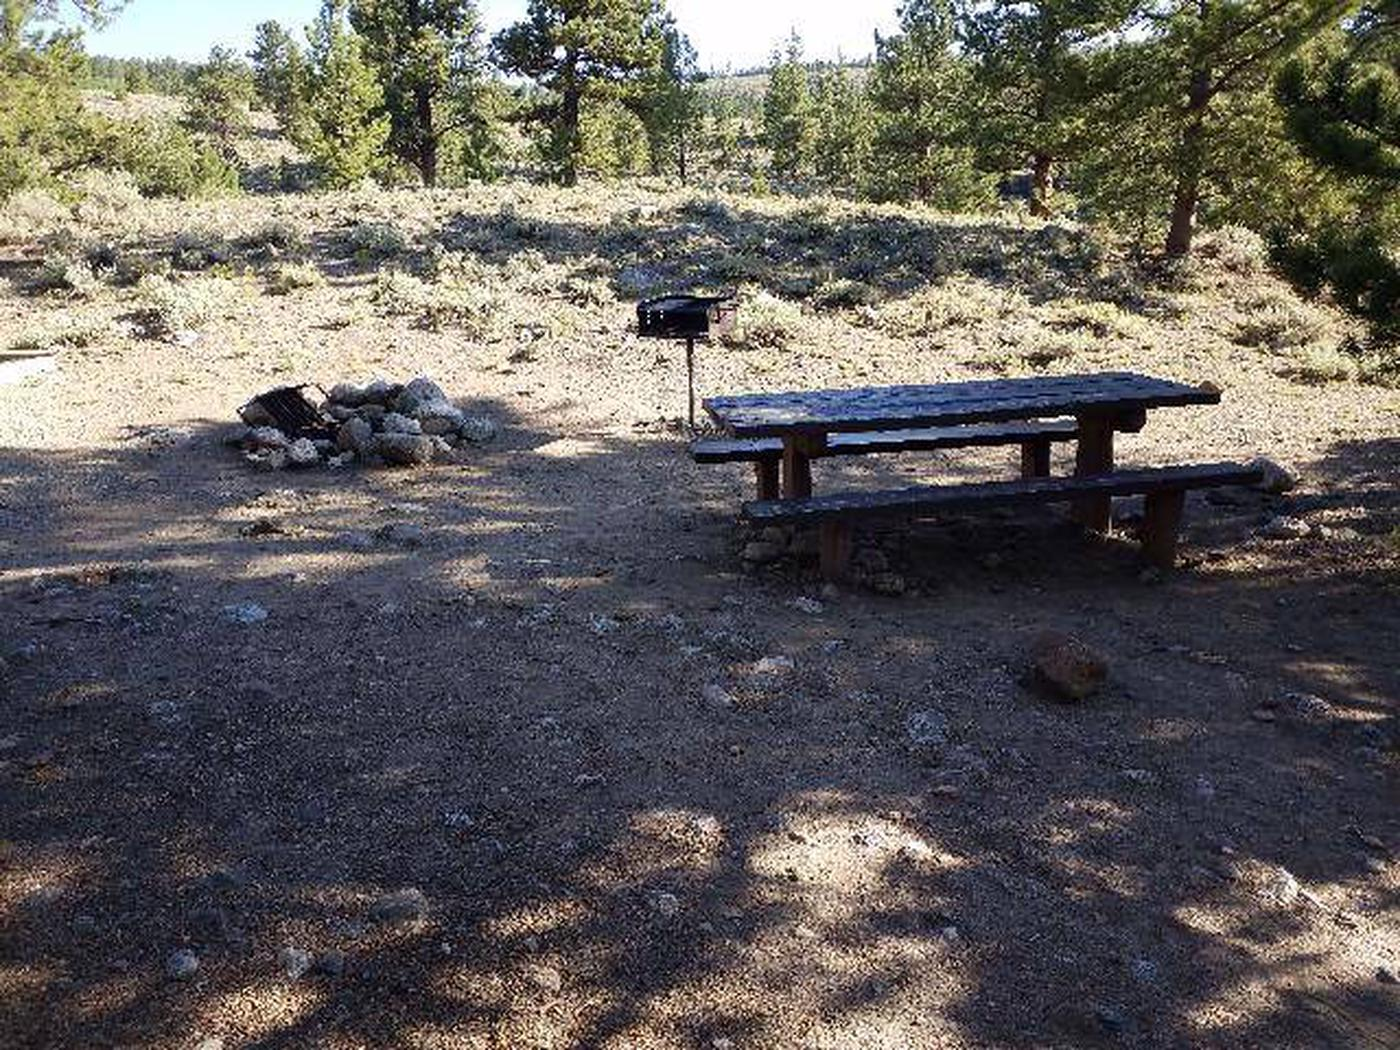 White Star Campground, site 49 picnic table, fire ring, and grill